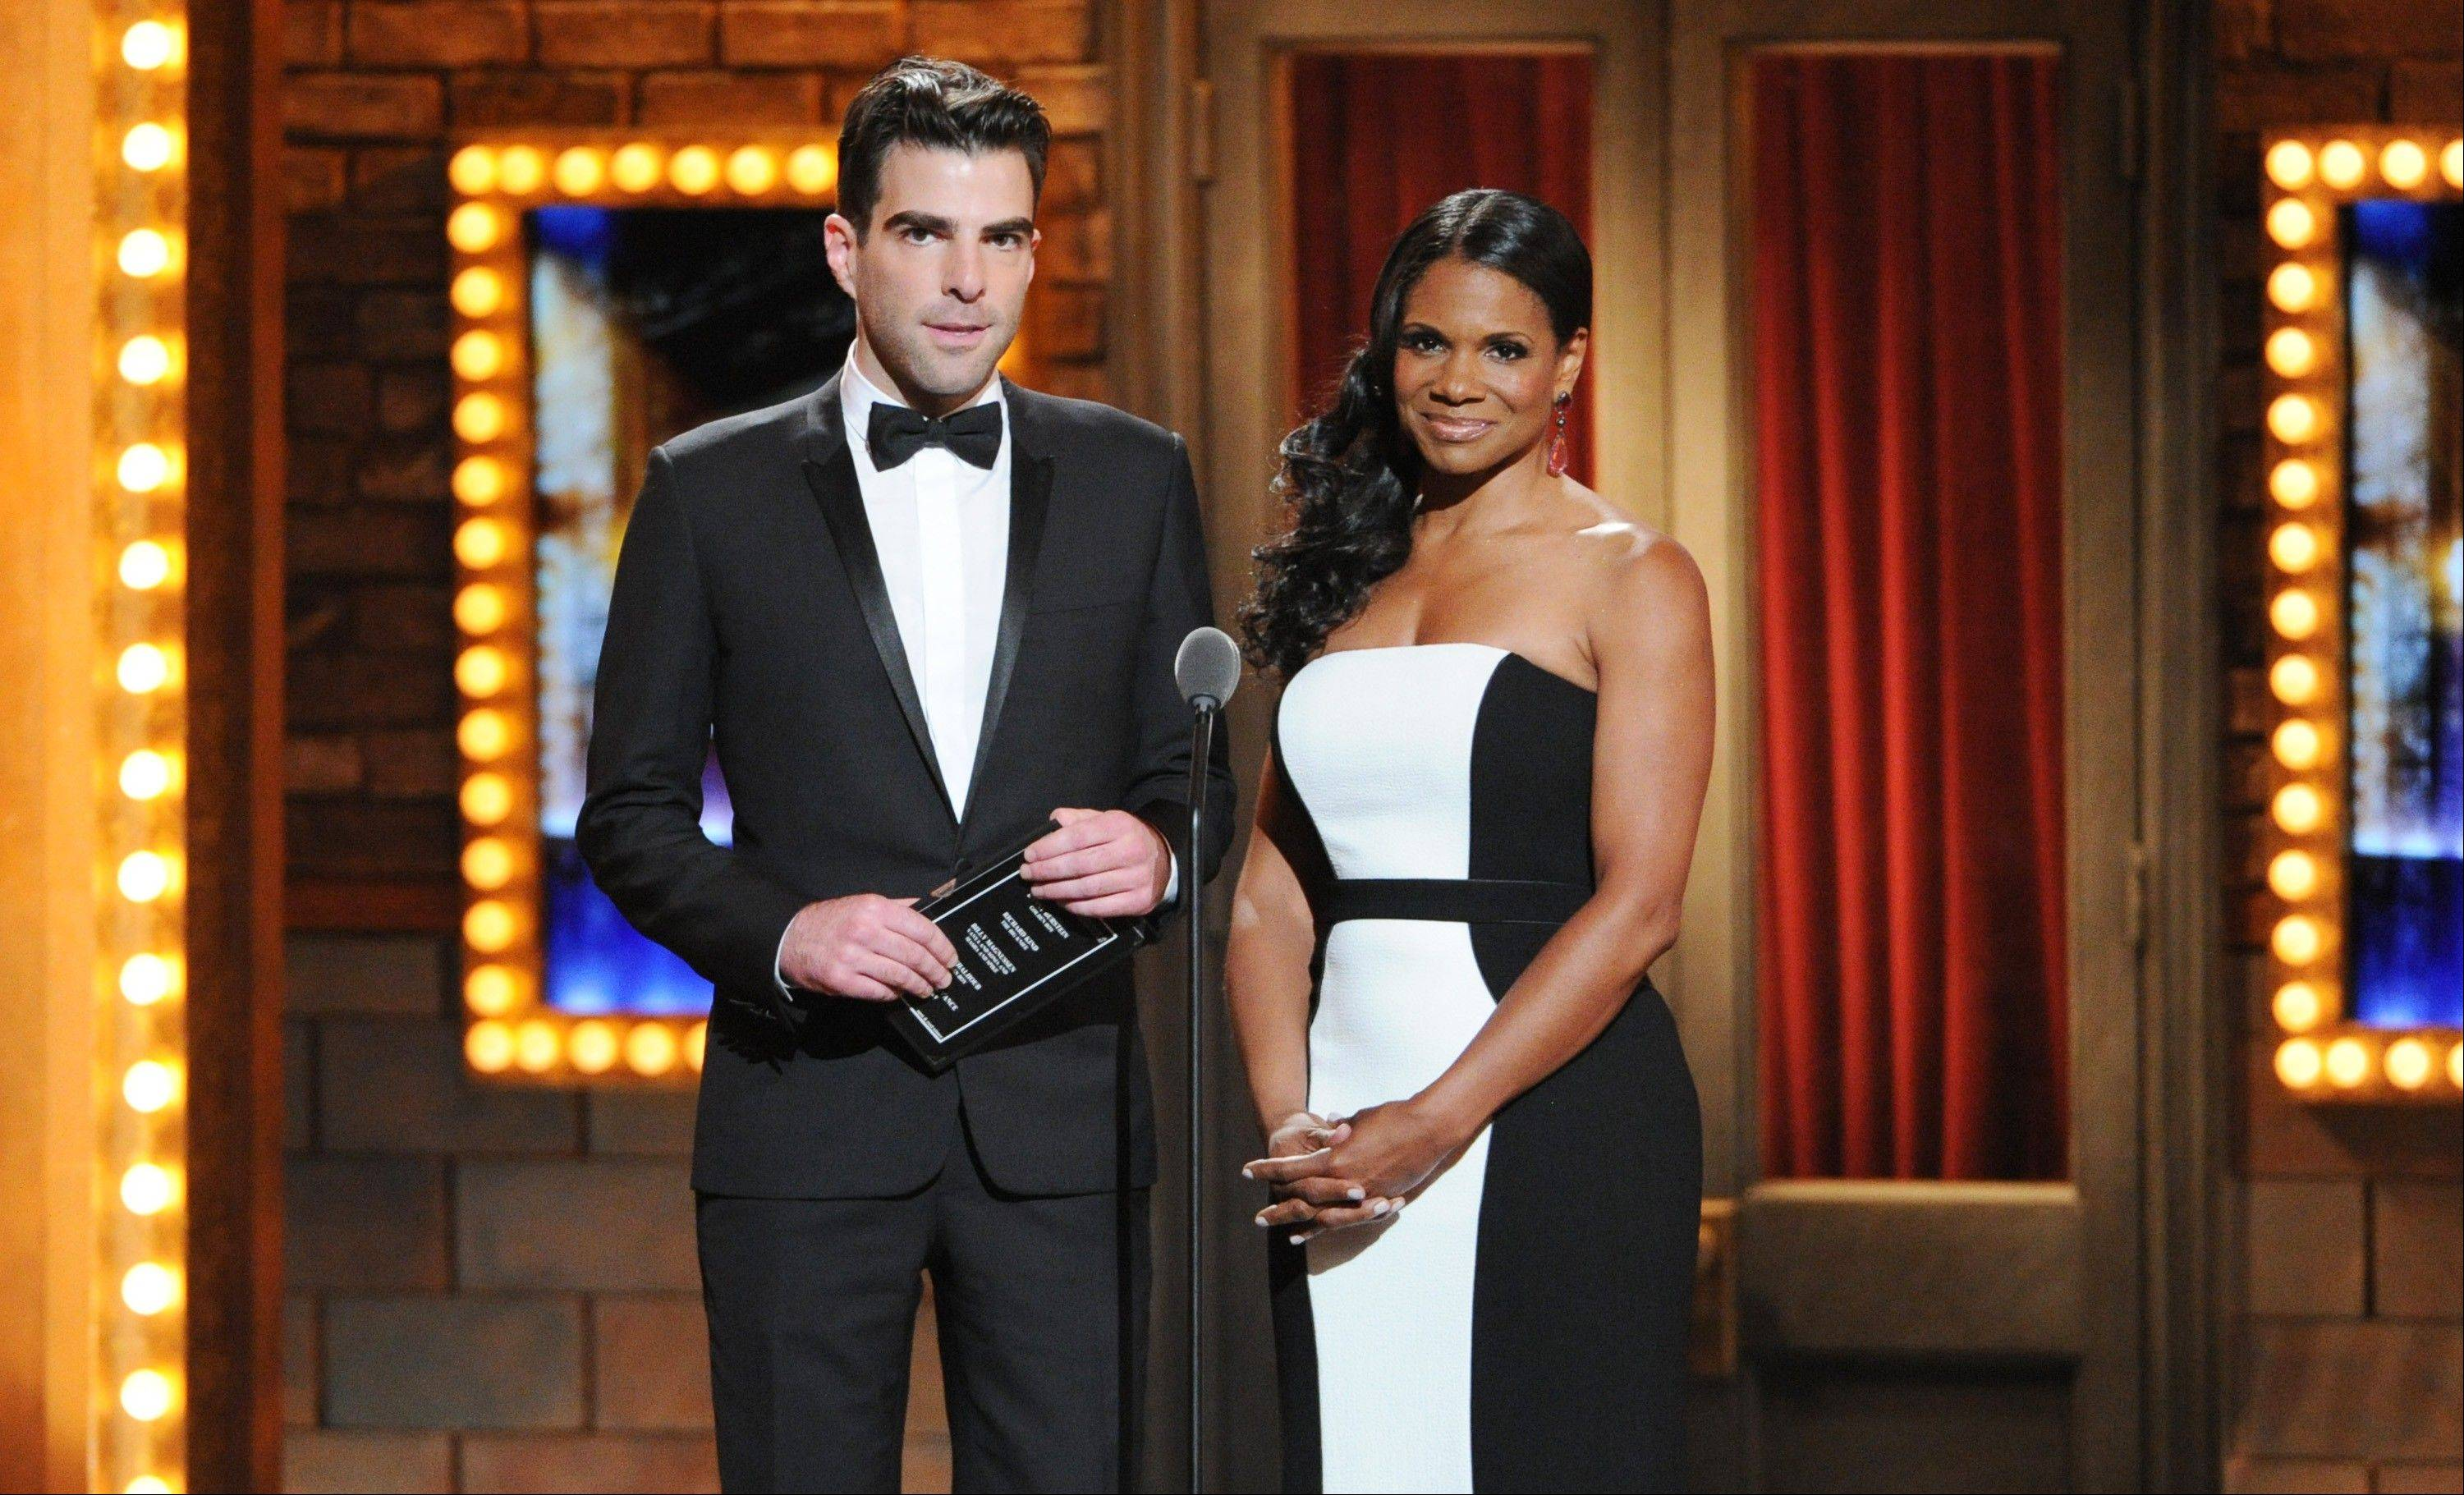 Actor Zachary Quinto, left, and actress, Audra McDonald present the Best Performance by an actor in a featured role in a play award at the 67th Annual Tony Awards, on Sunday, June 9, 2013 in New York.